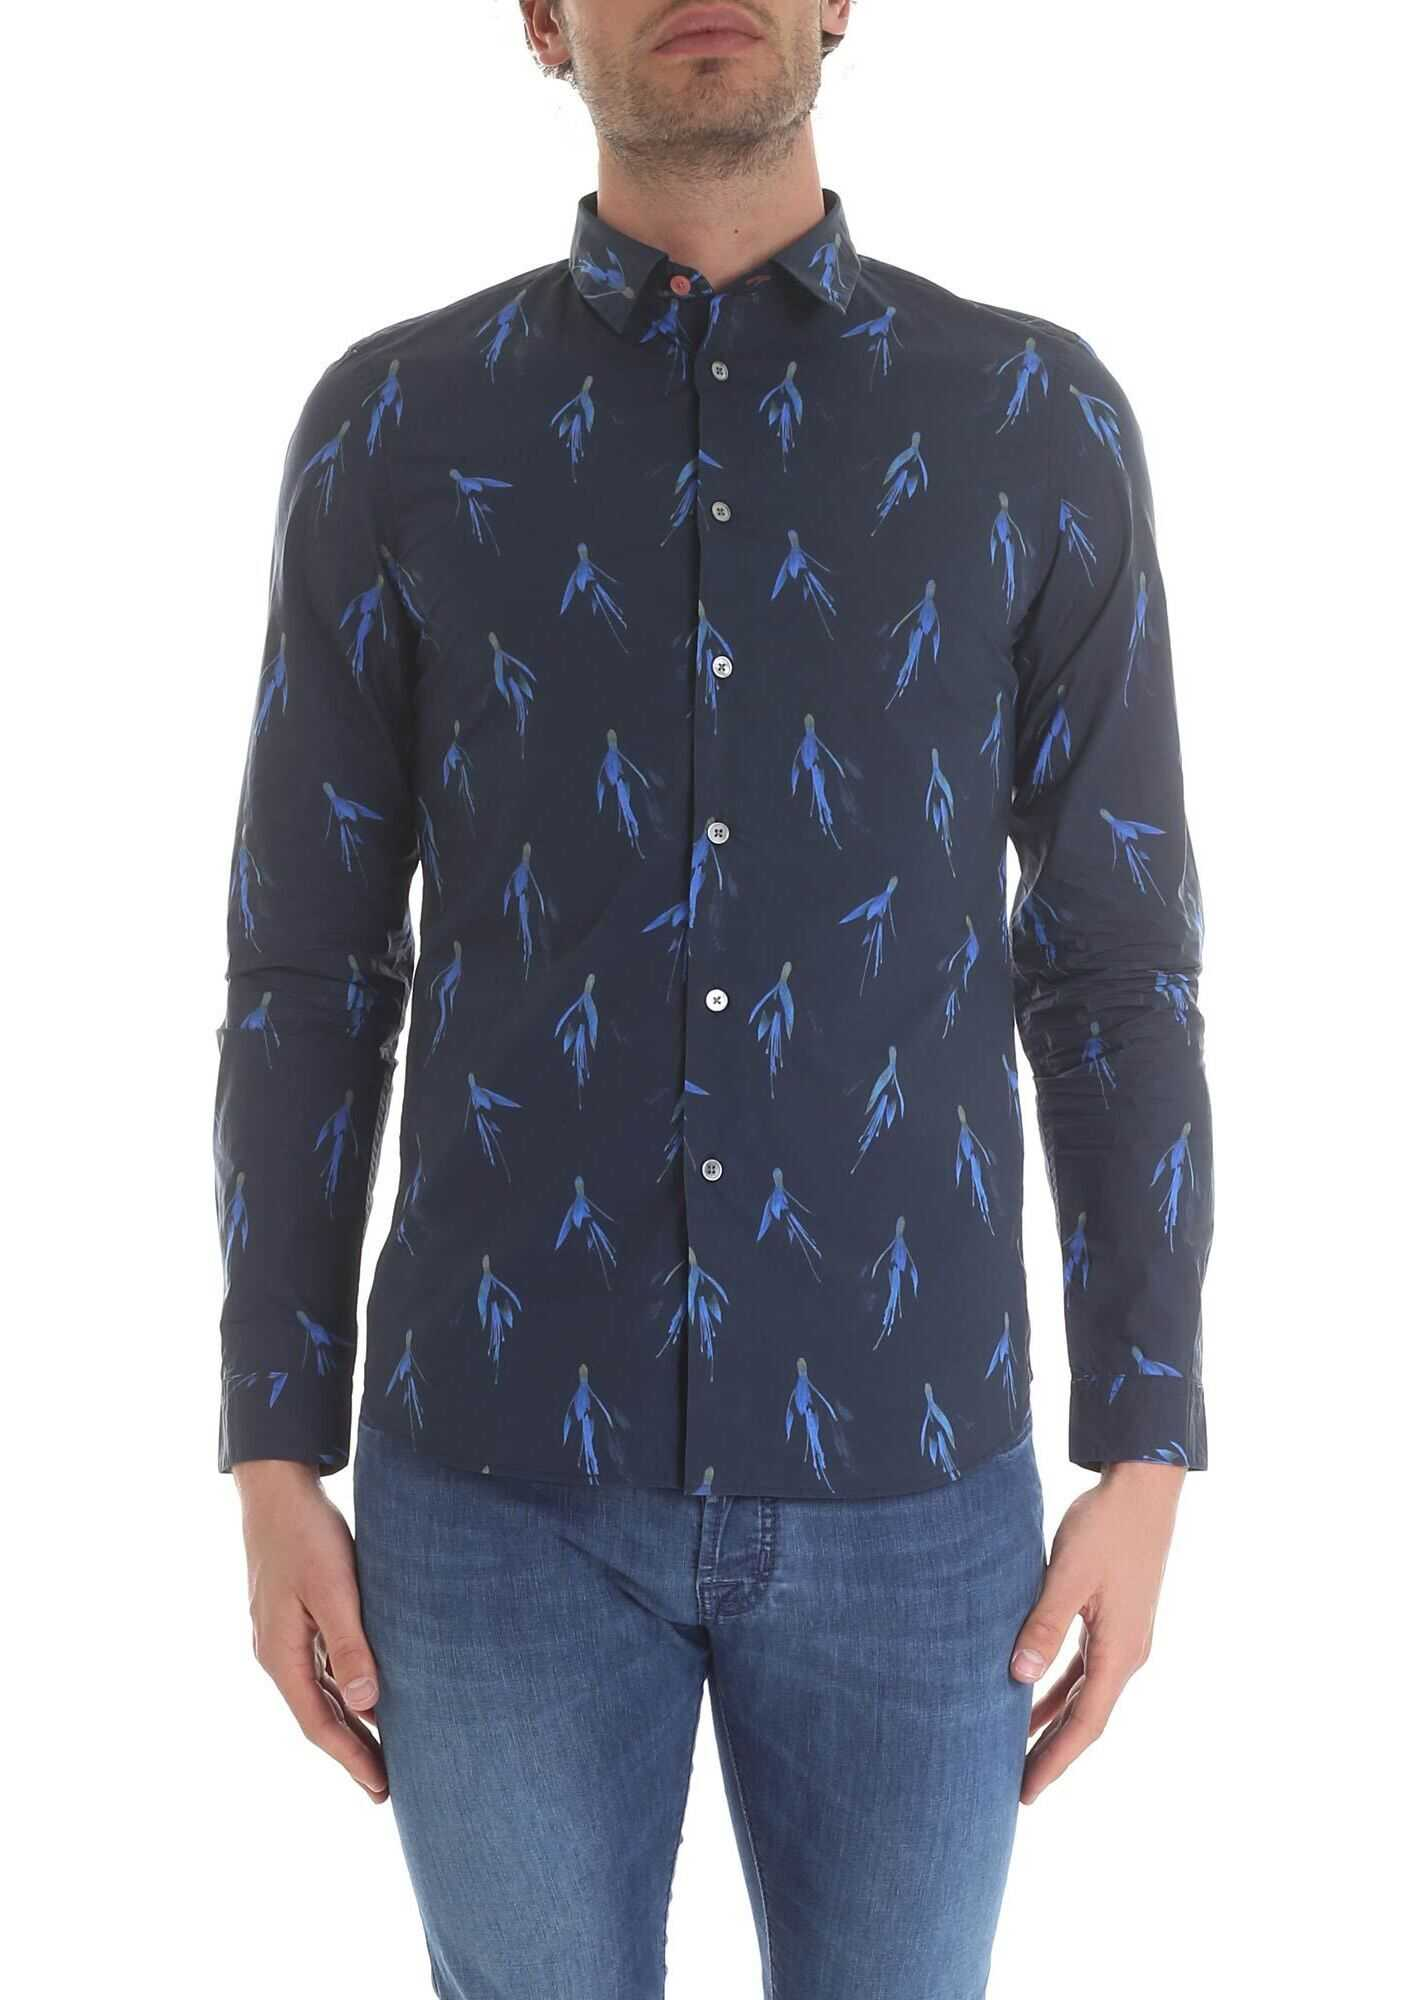 Paul Smith Floral Shirt In Blue Blue